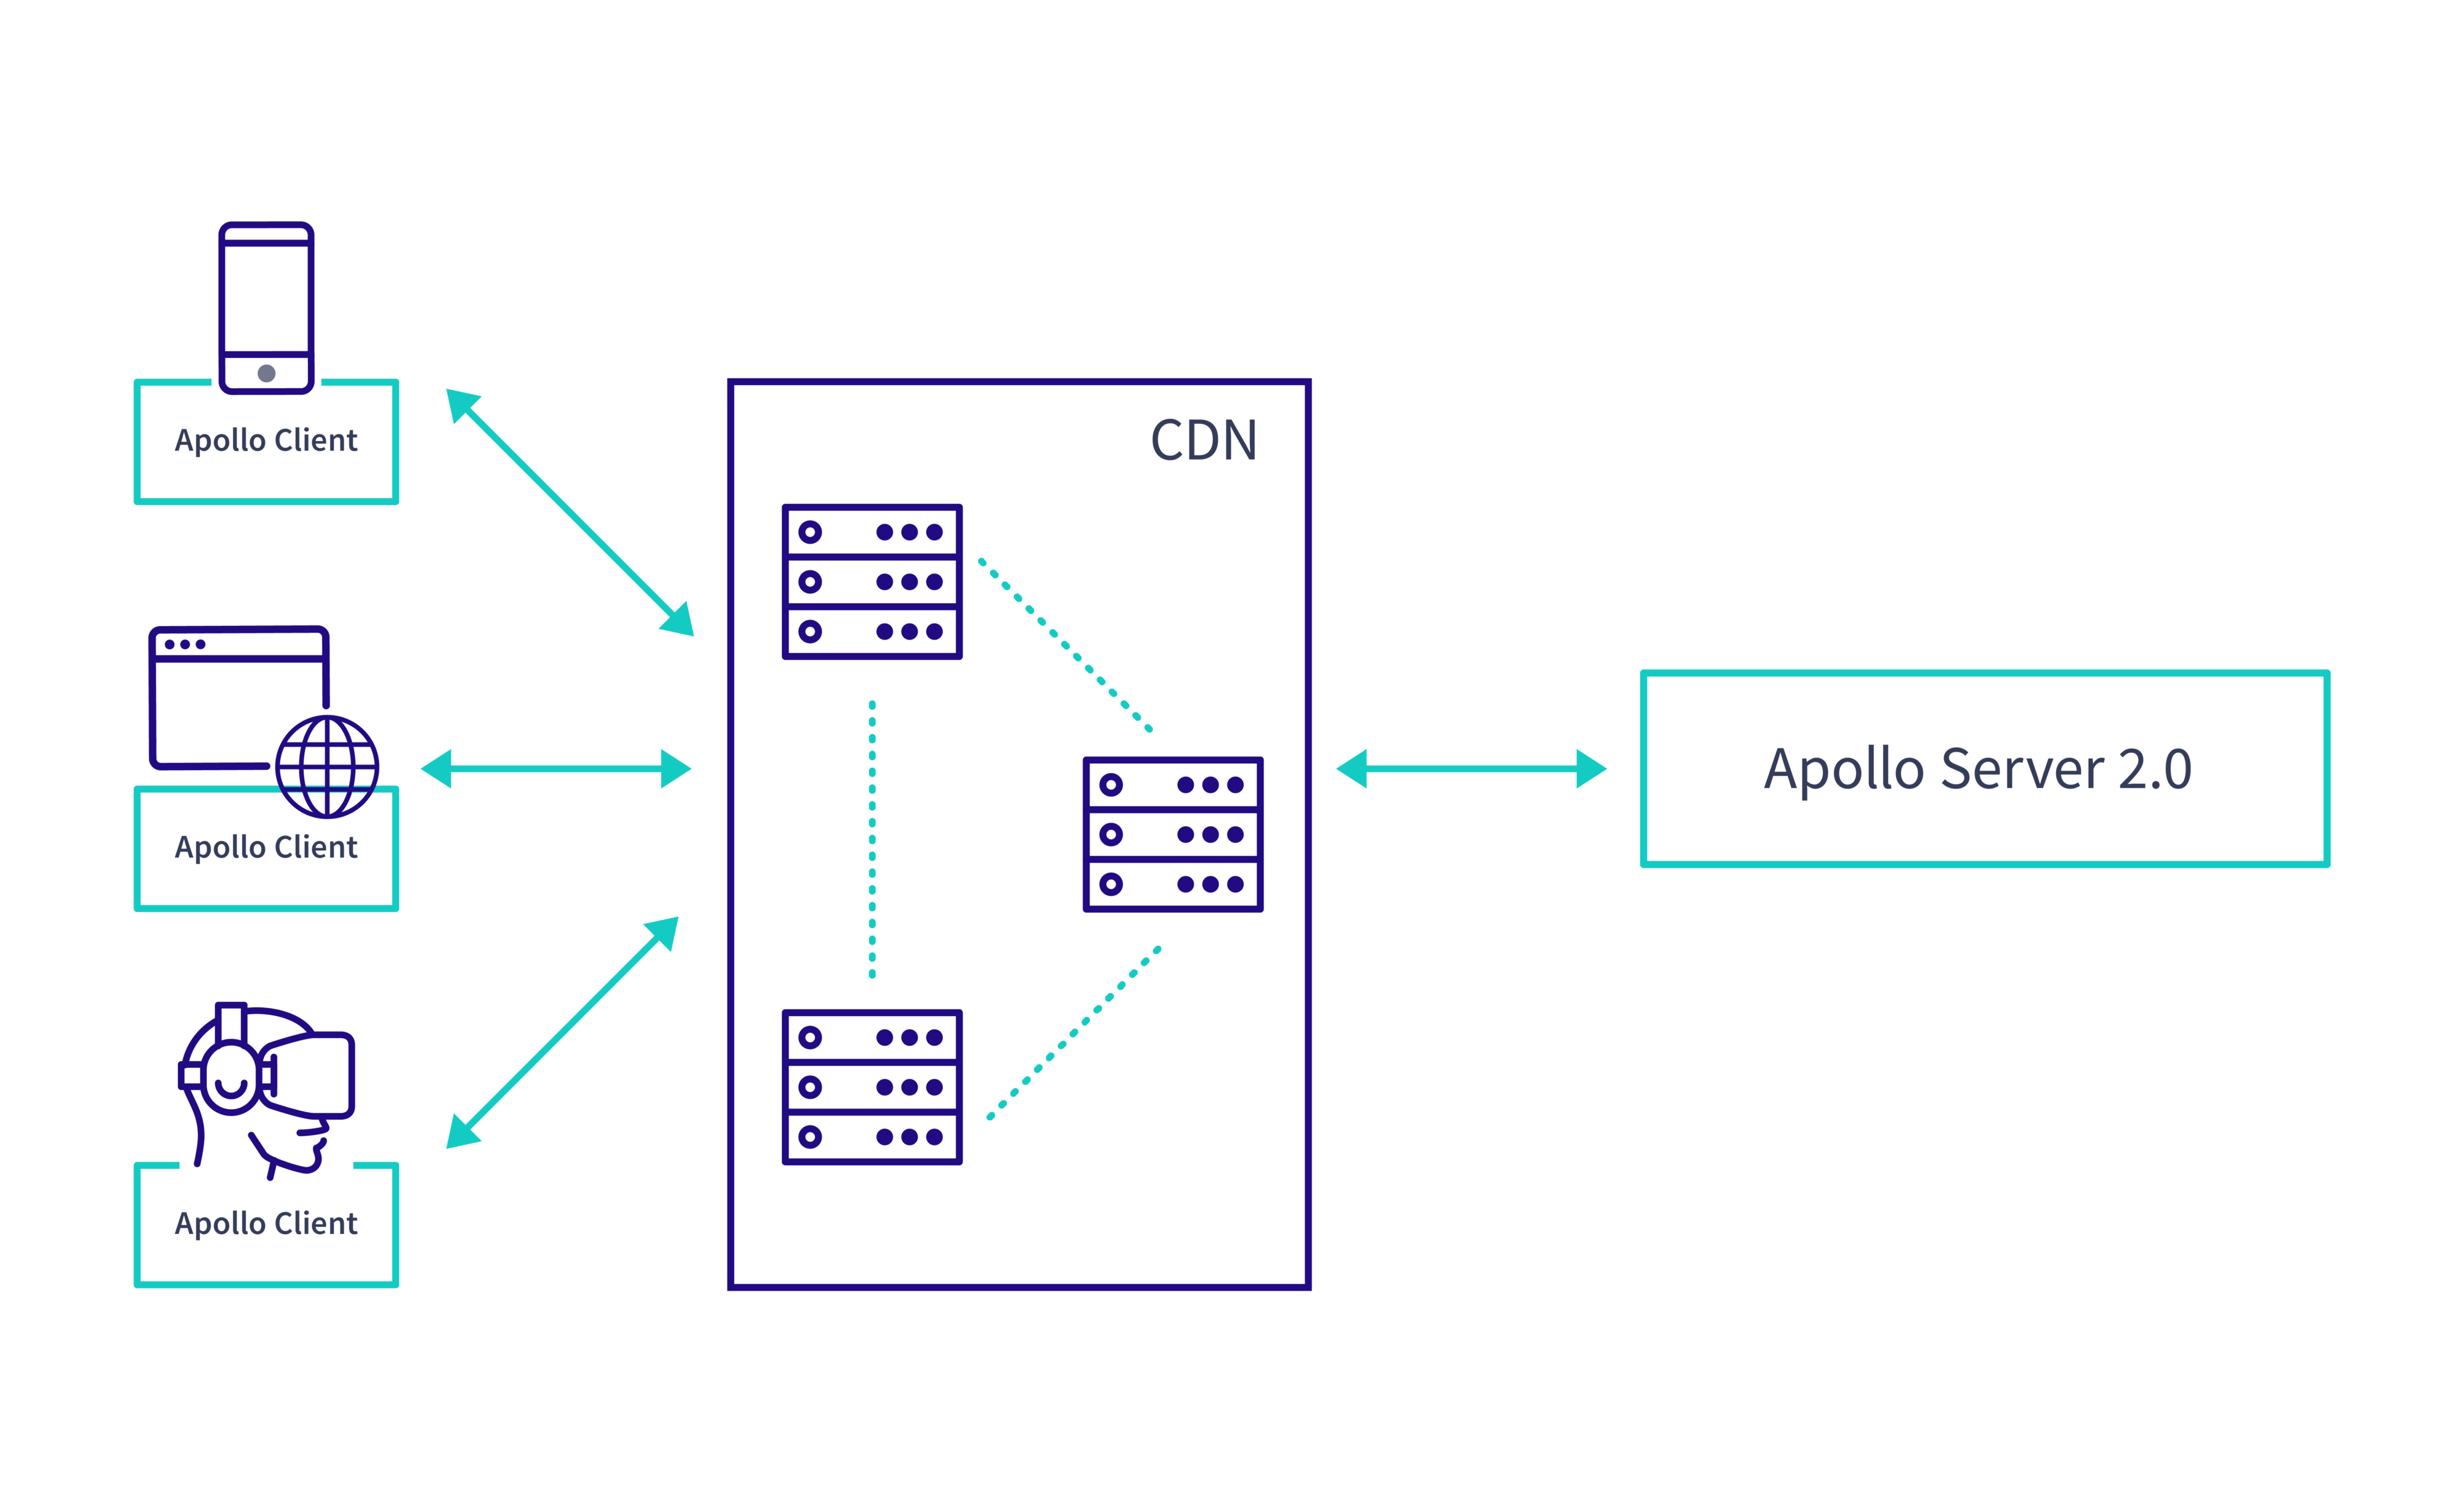 Automatic Persisted Queries and CDN caching with Apollo